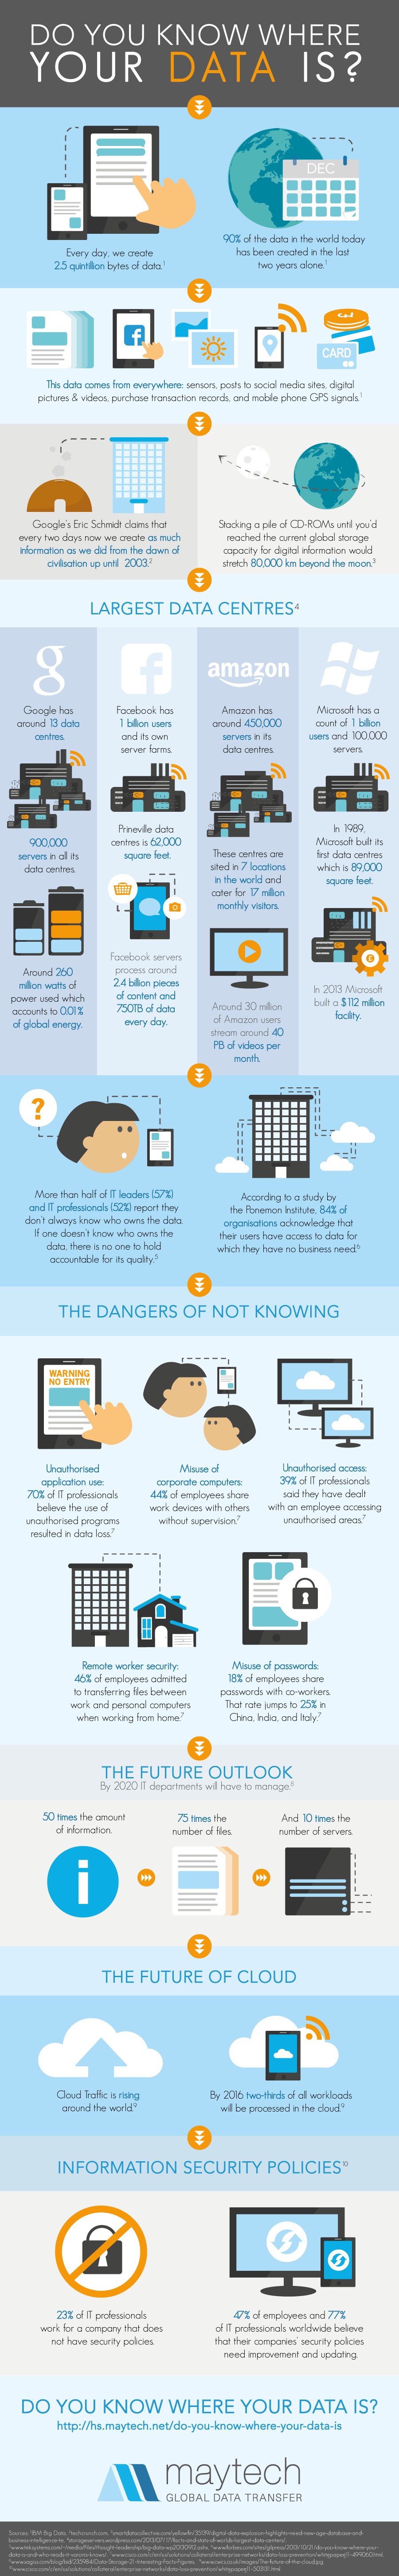 Infographic: Do you know where your data is? #infographic